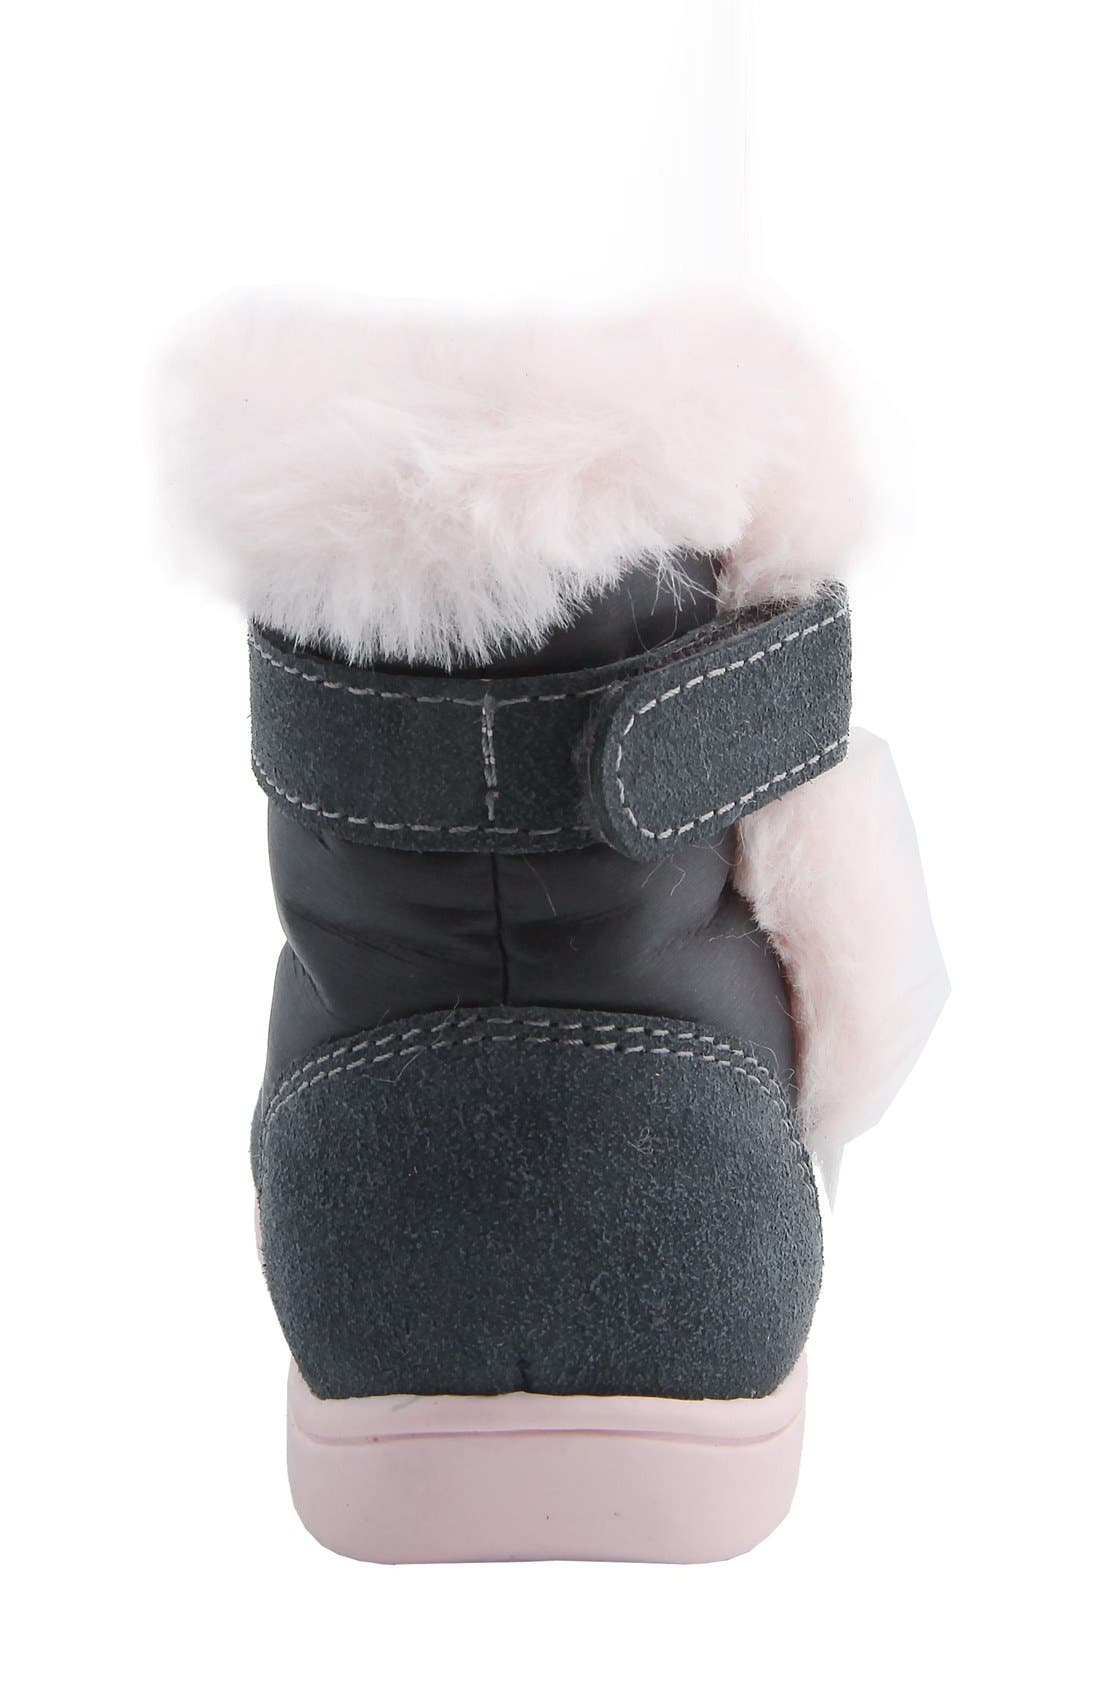 MOBILITY, Nina 'Anya' Faux Fur Bootie, Alternate thumbnail 6, color, GREY SUEDE